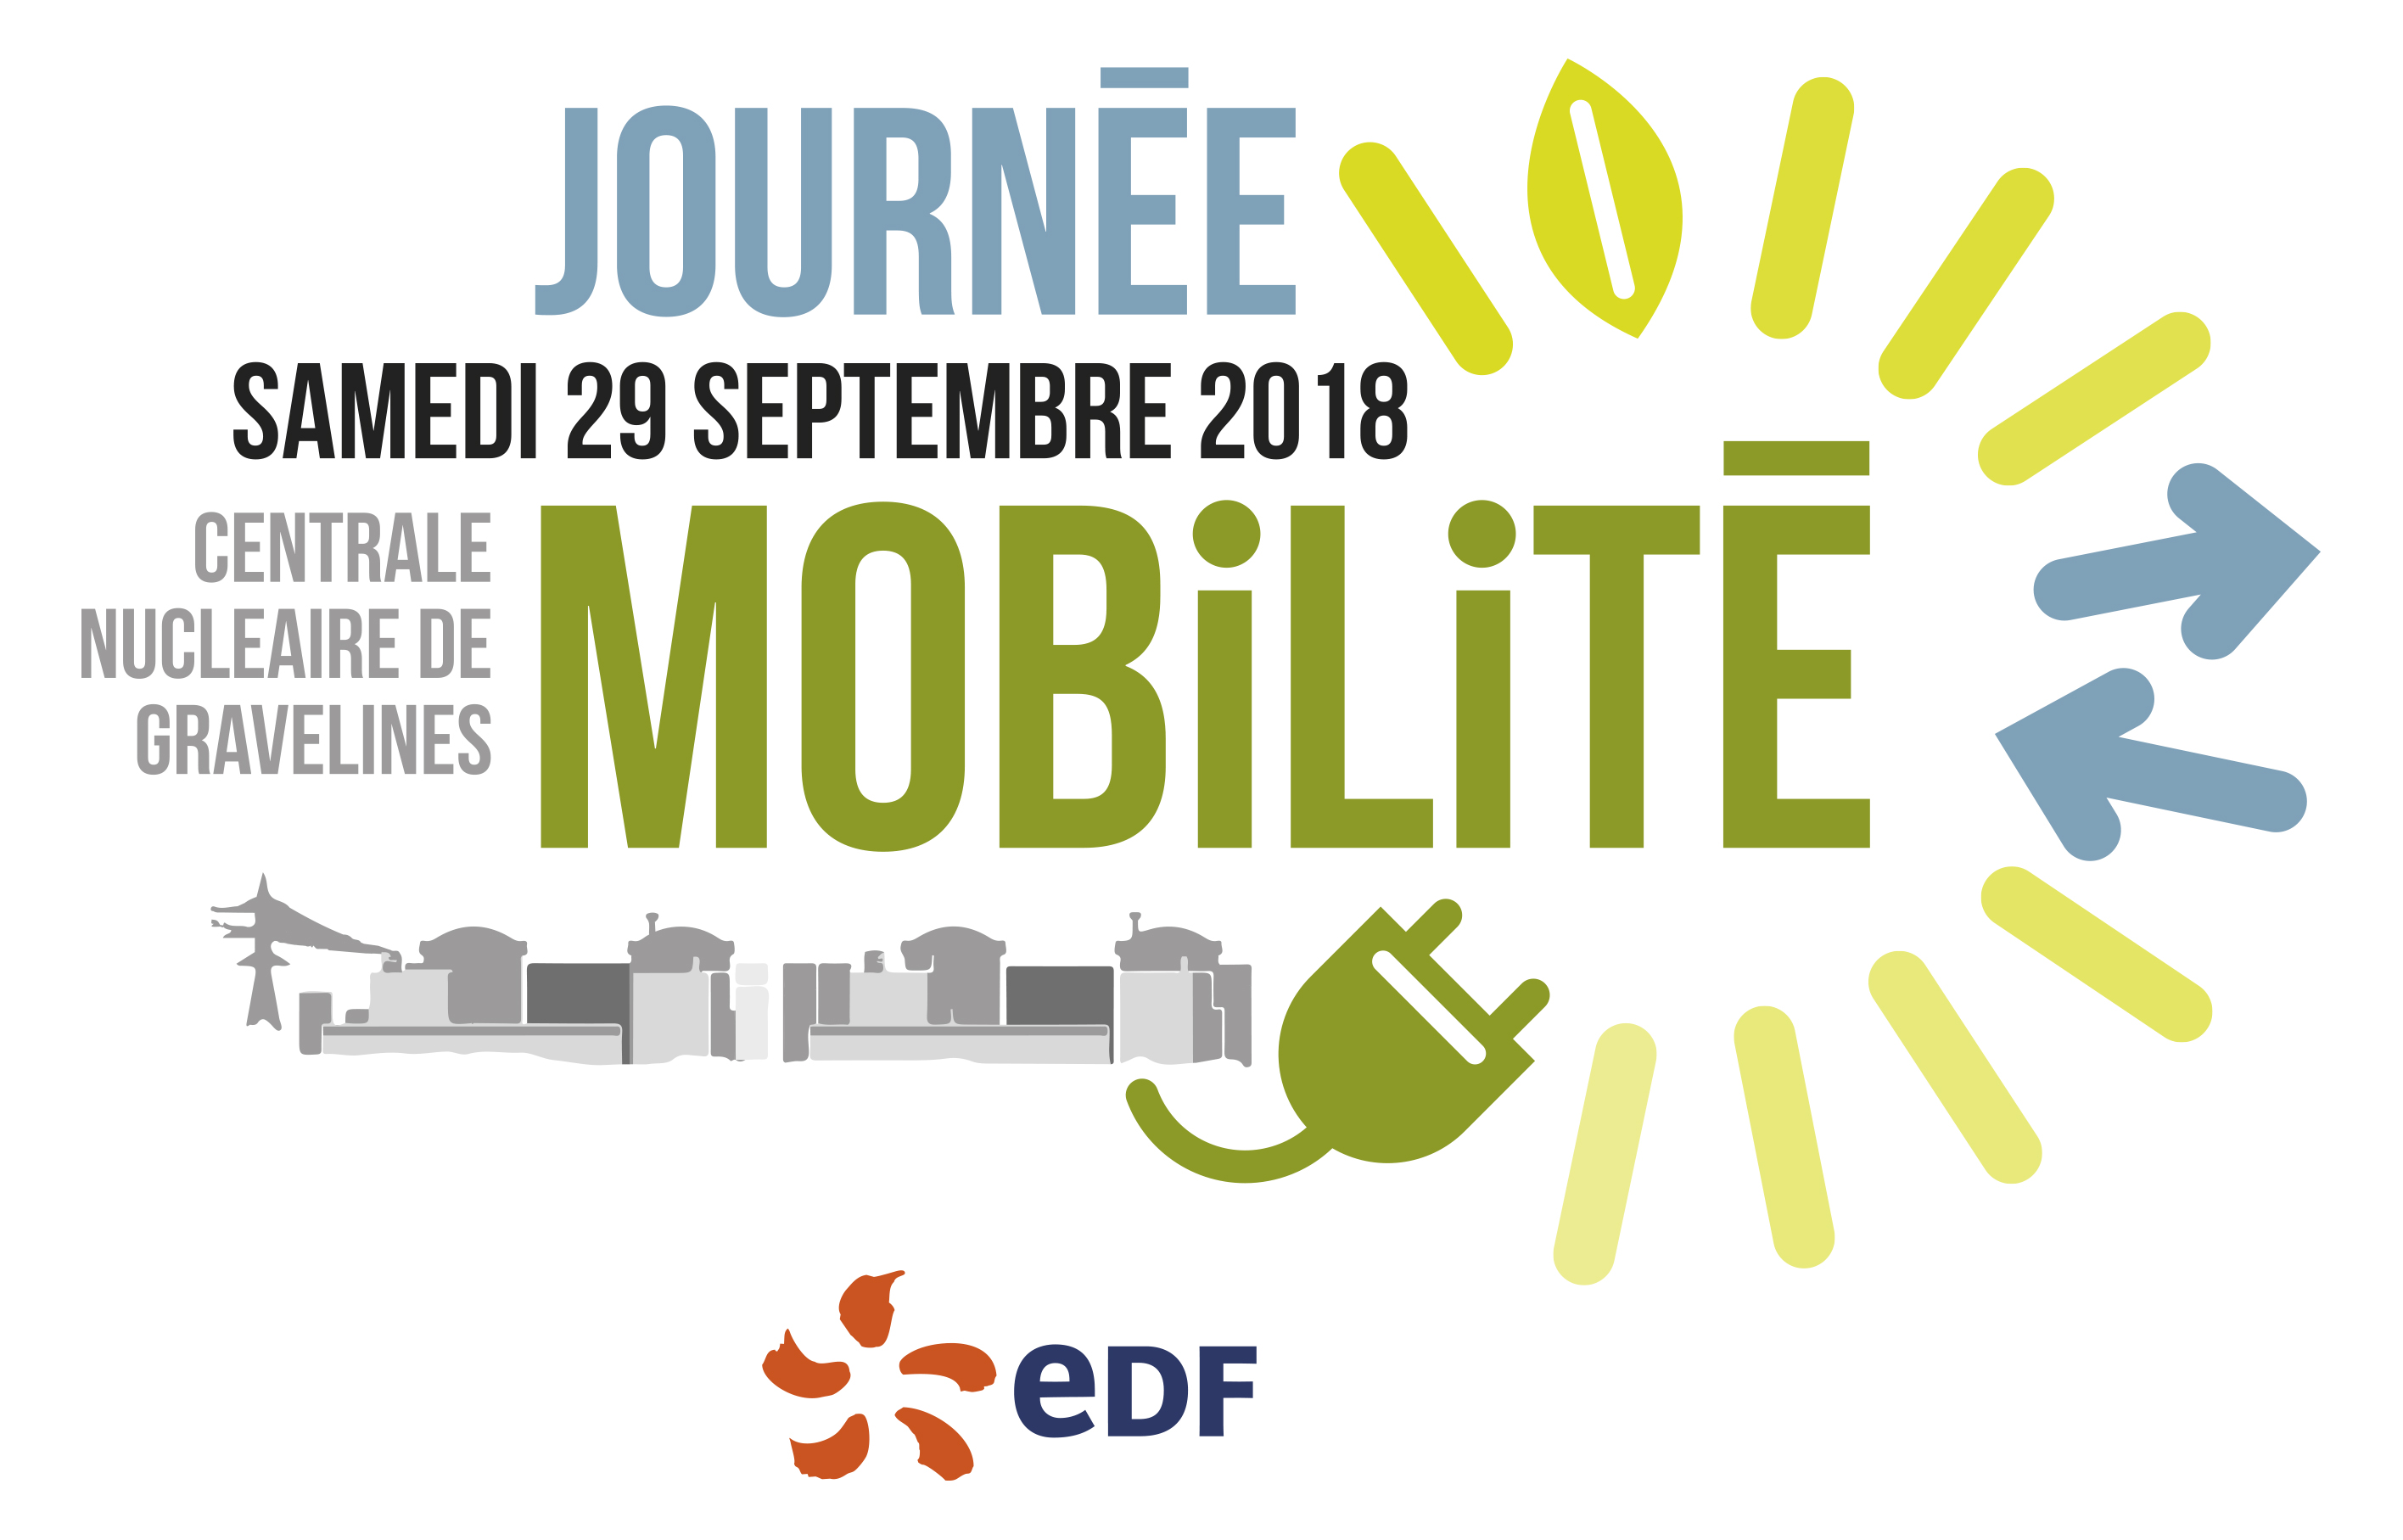 journ e mobilit la centrale nucl aire de gravelines le 29 septembre 2018 edf france. Black Bedroom Furniture Sets. Home Design Ideas